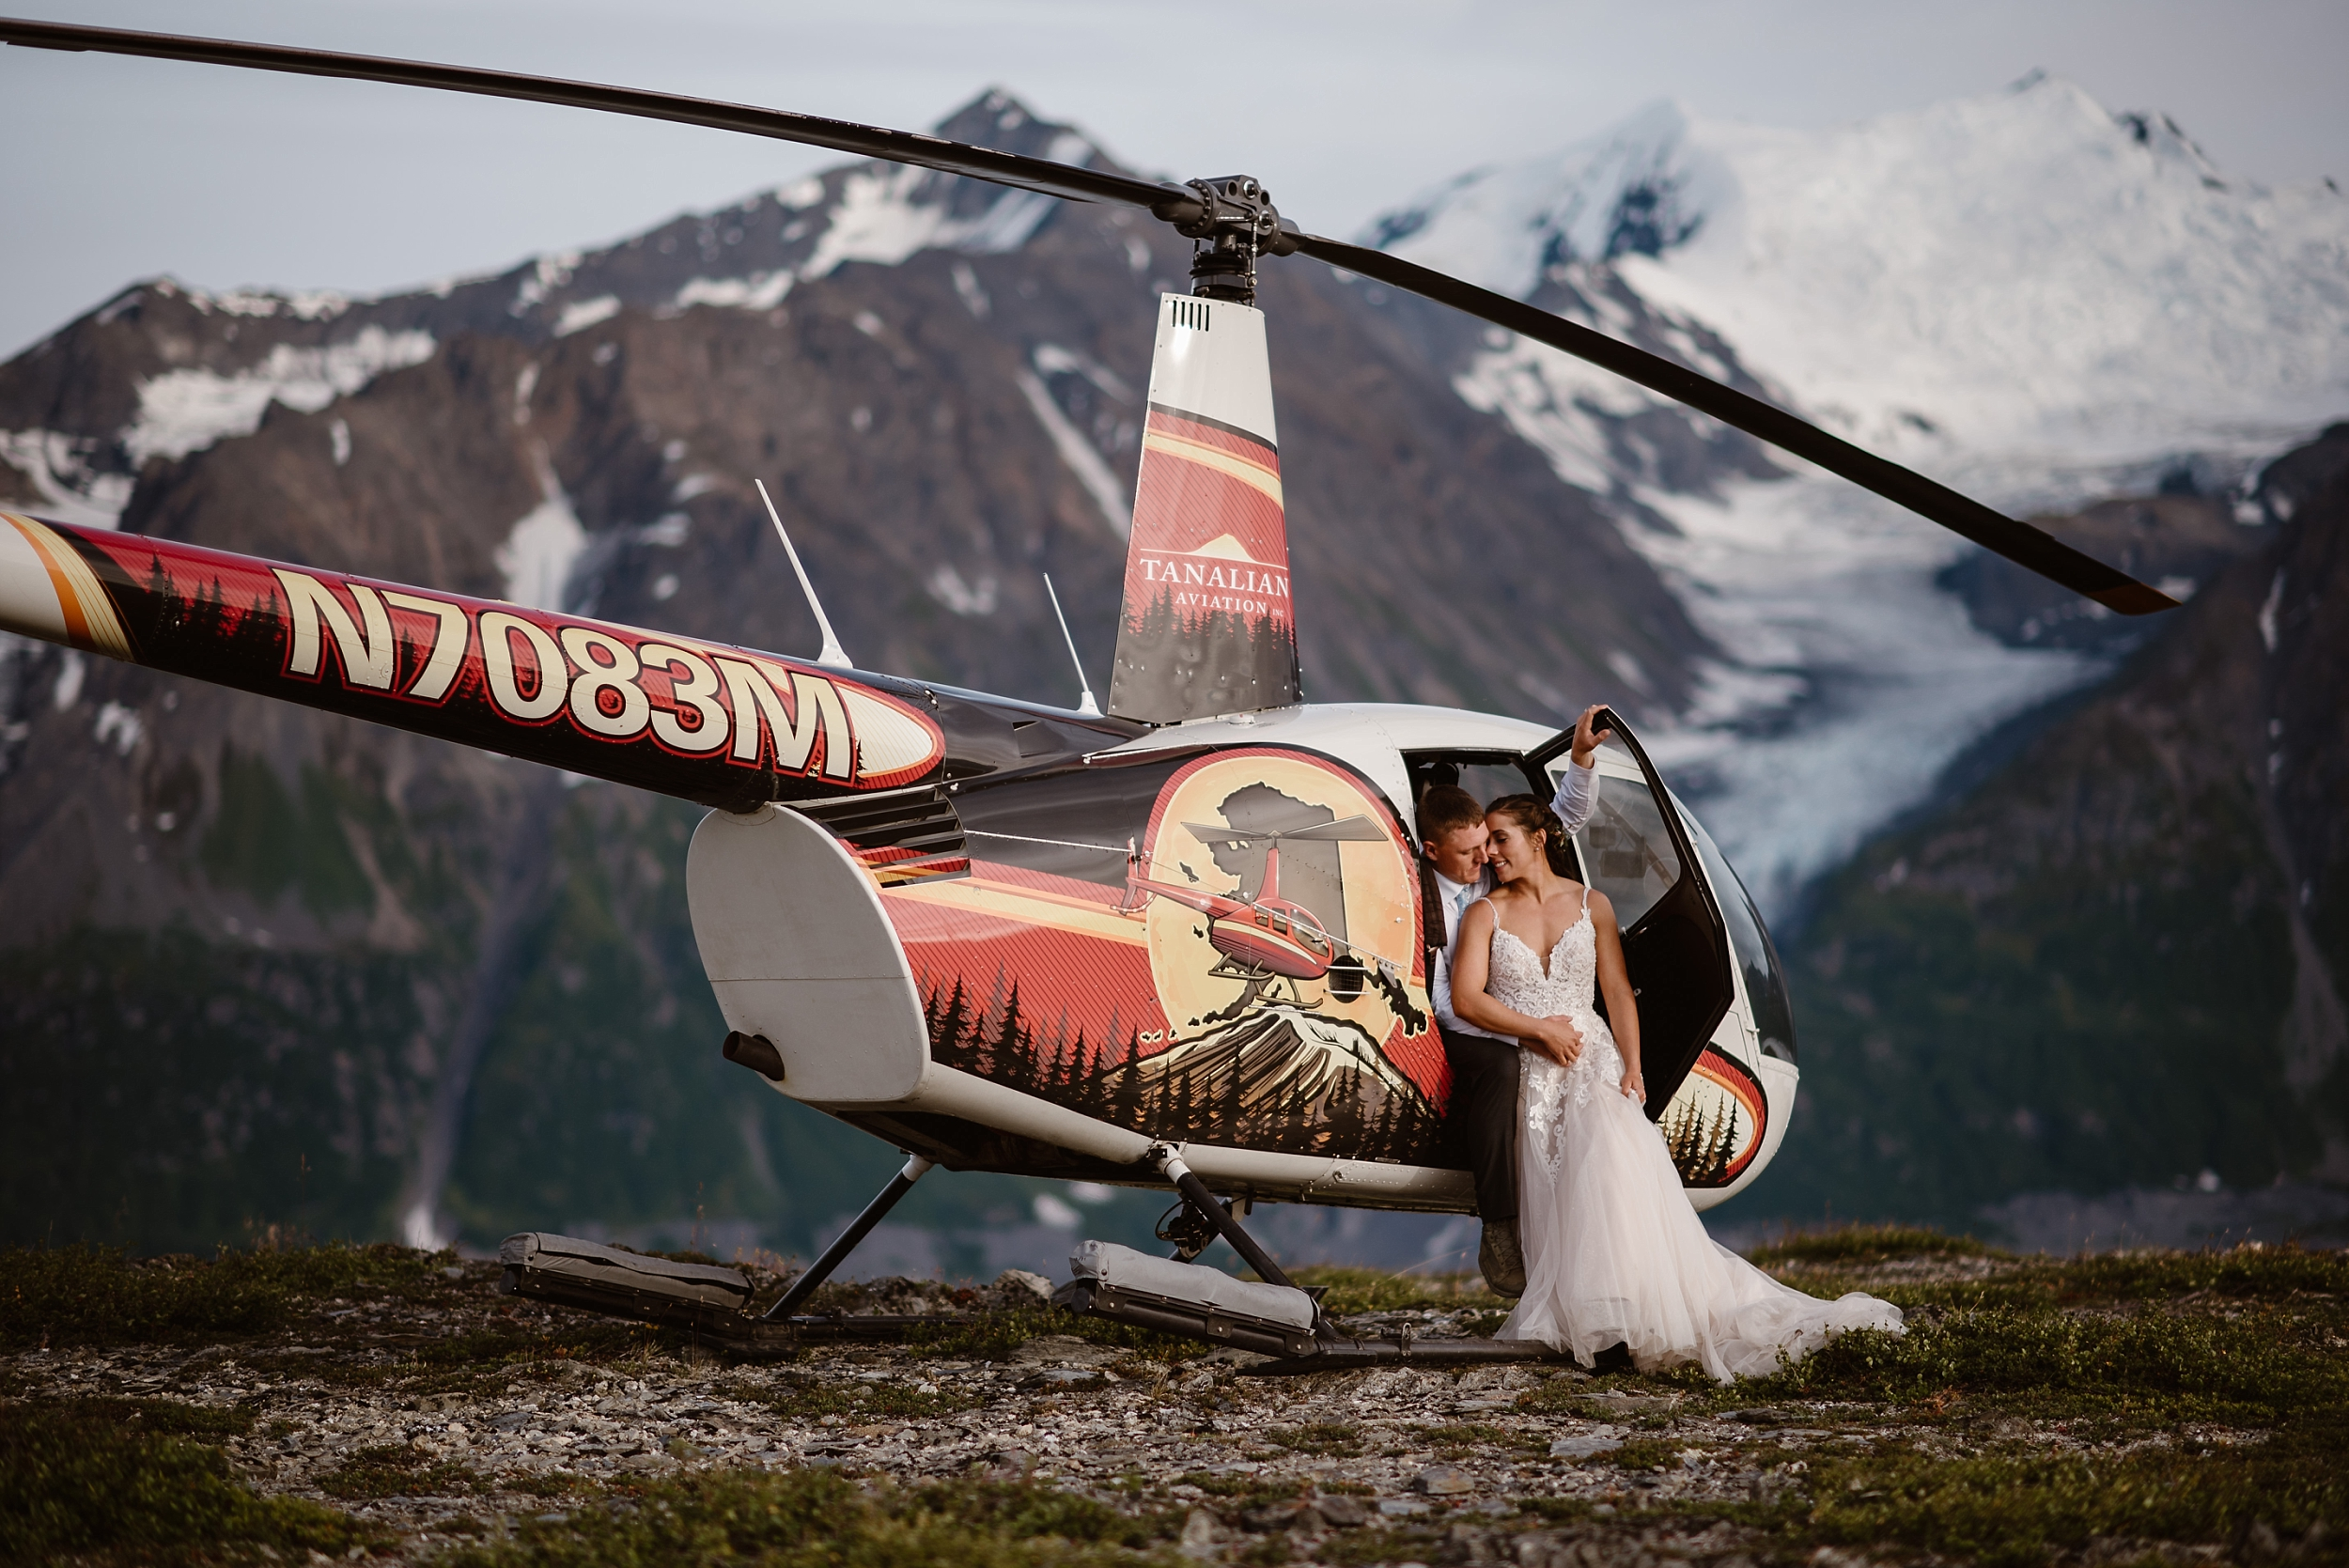 The bride and groom sit in the helicopter in front of an enormous, glacial-mountain-peak. Connor , the groom, sits with his legs outside of the open helicopter door while Jordyn, his bride, sits on his lap. The two nuzzle up close in this elopement photo captured by Adventure Instead, Alaska elopement photographers.